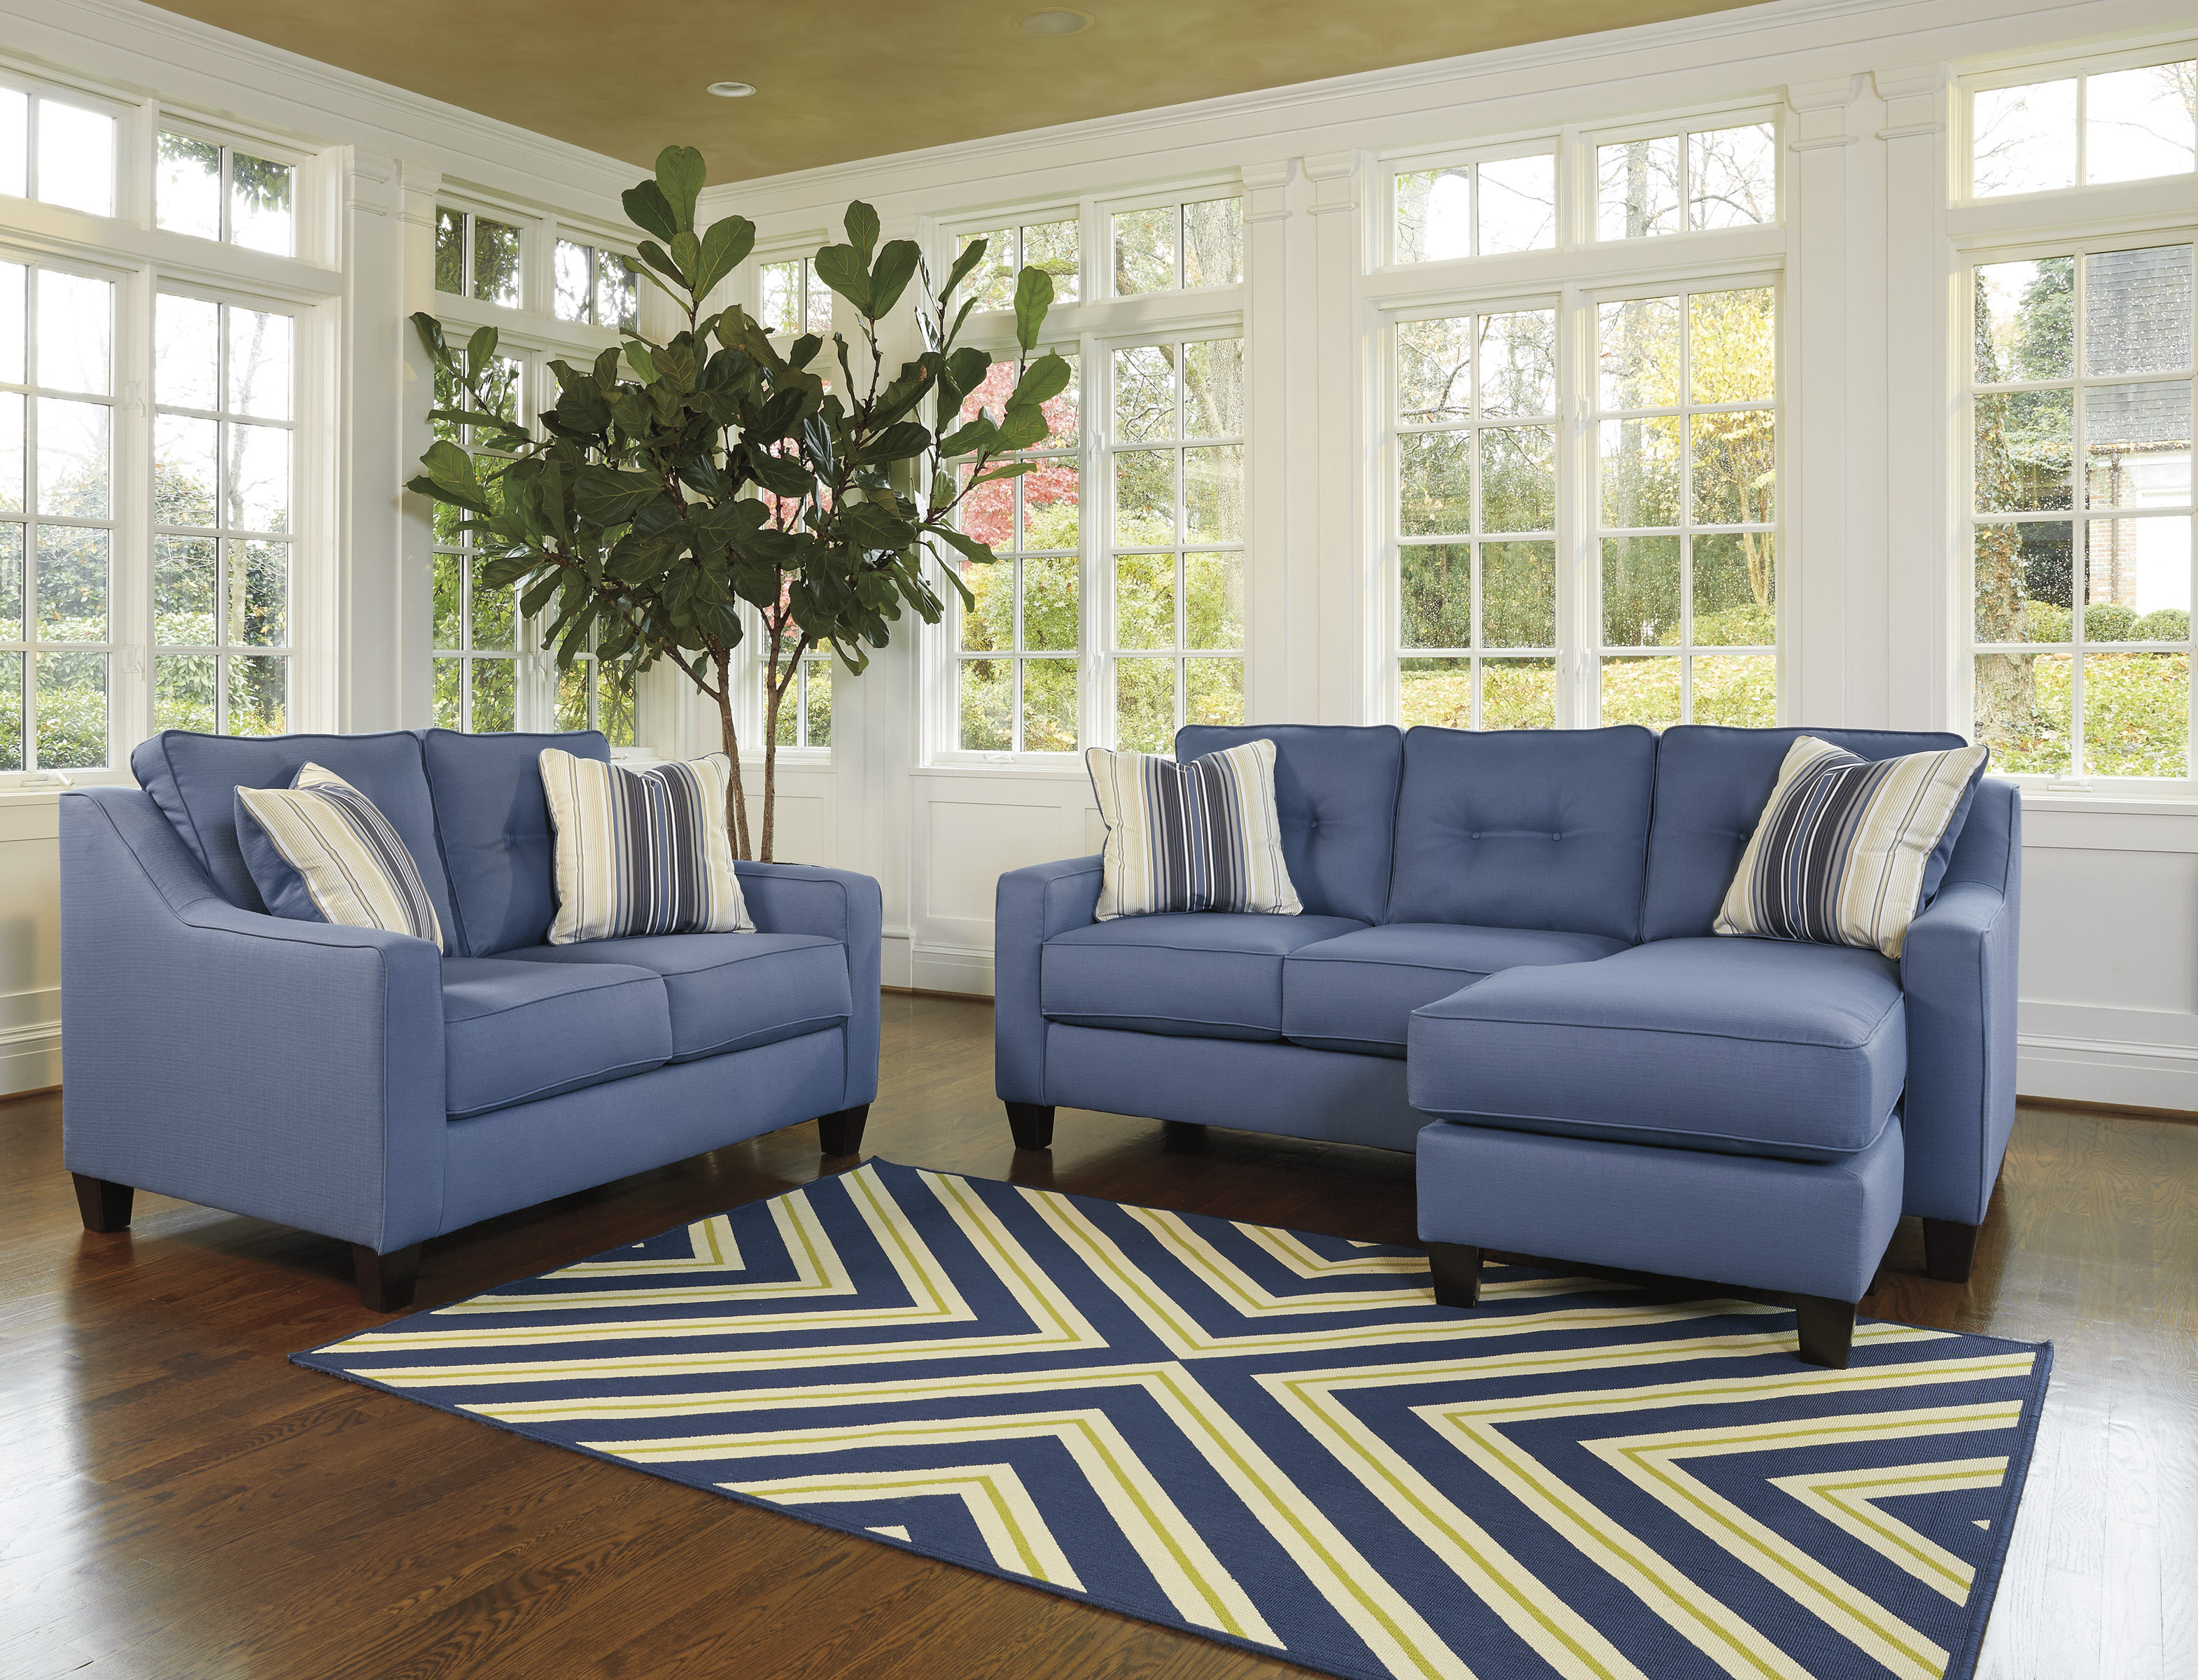 Aldie Nuvella Blue Sofa Chaise and Loveseat  / $27.99 A Week